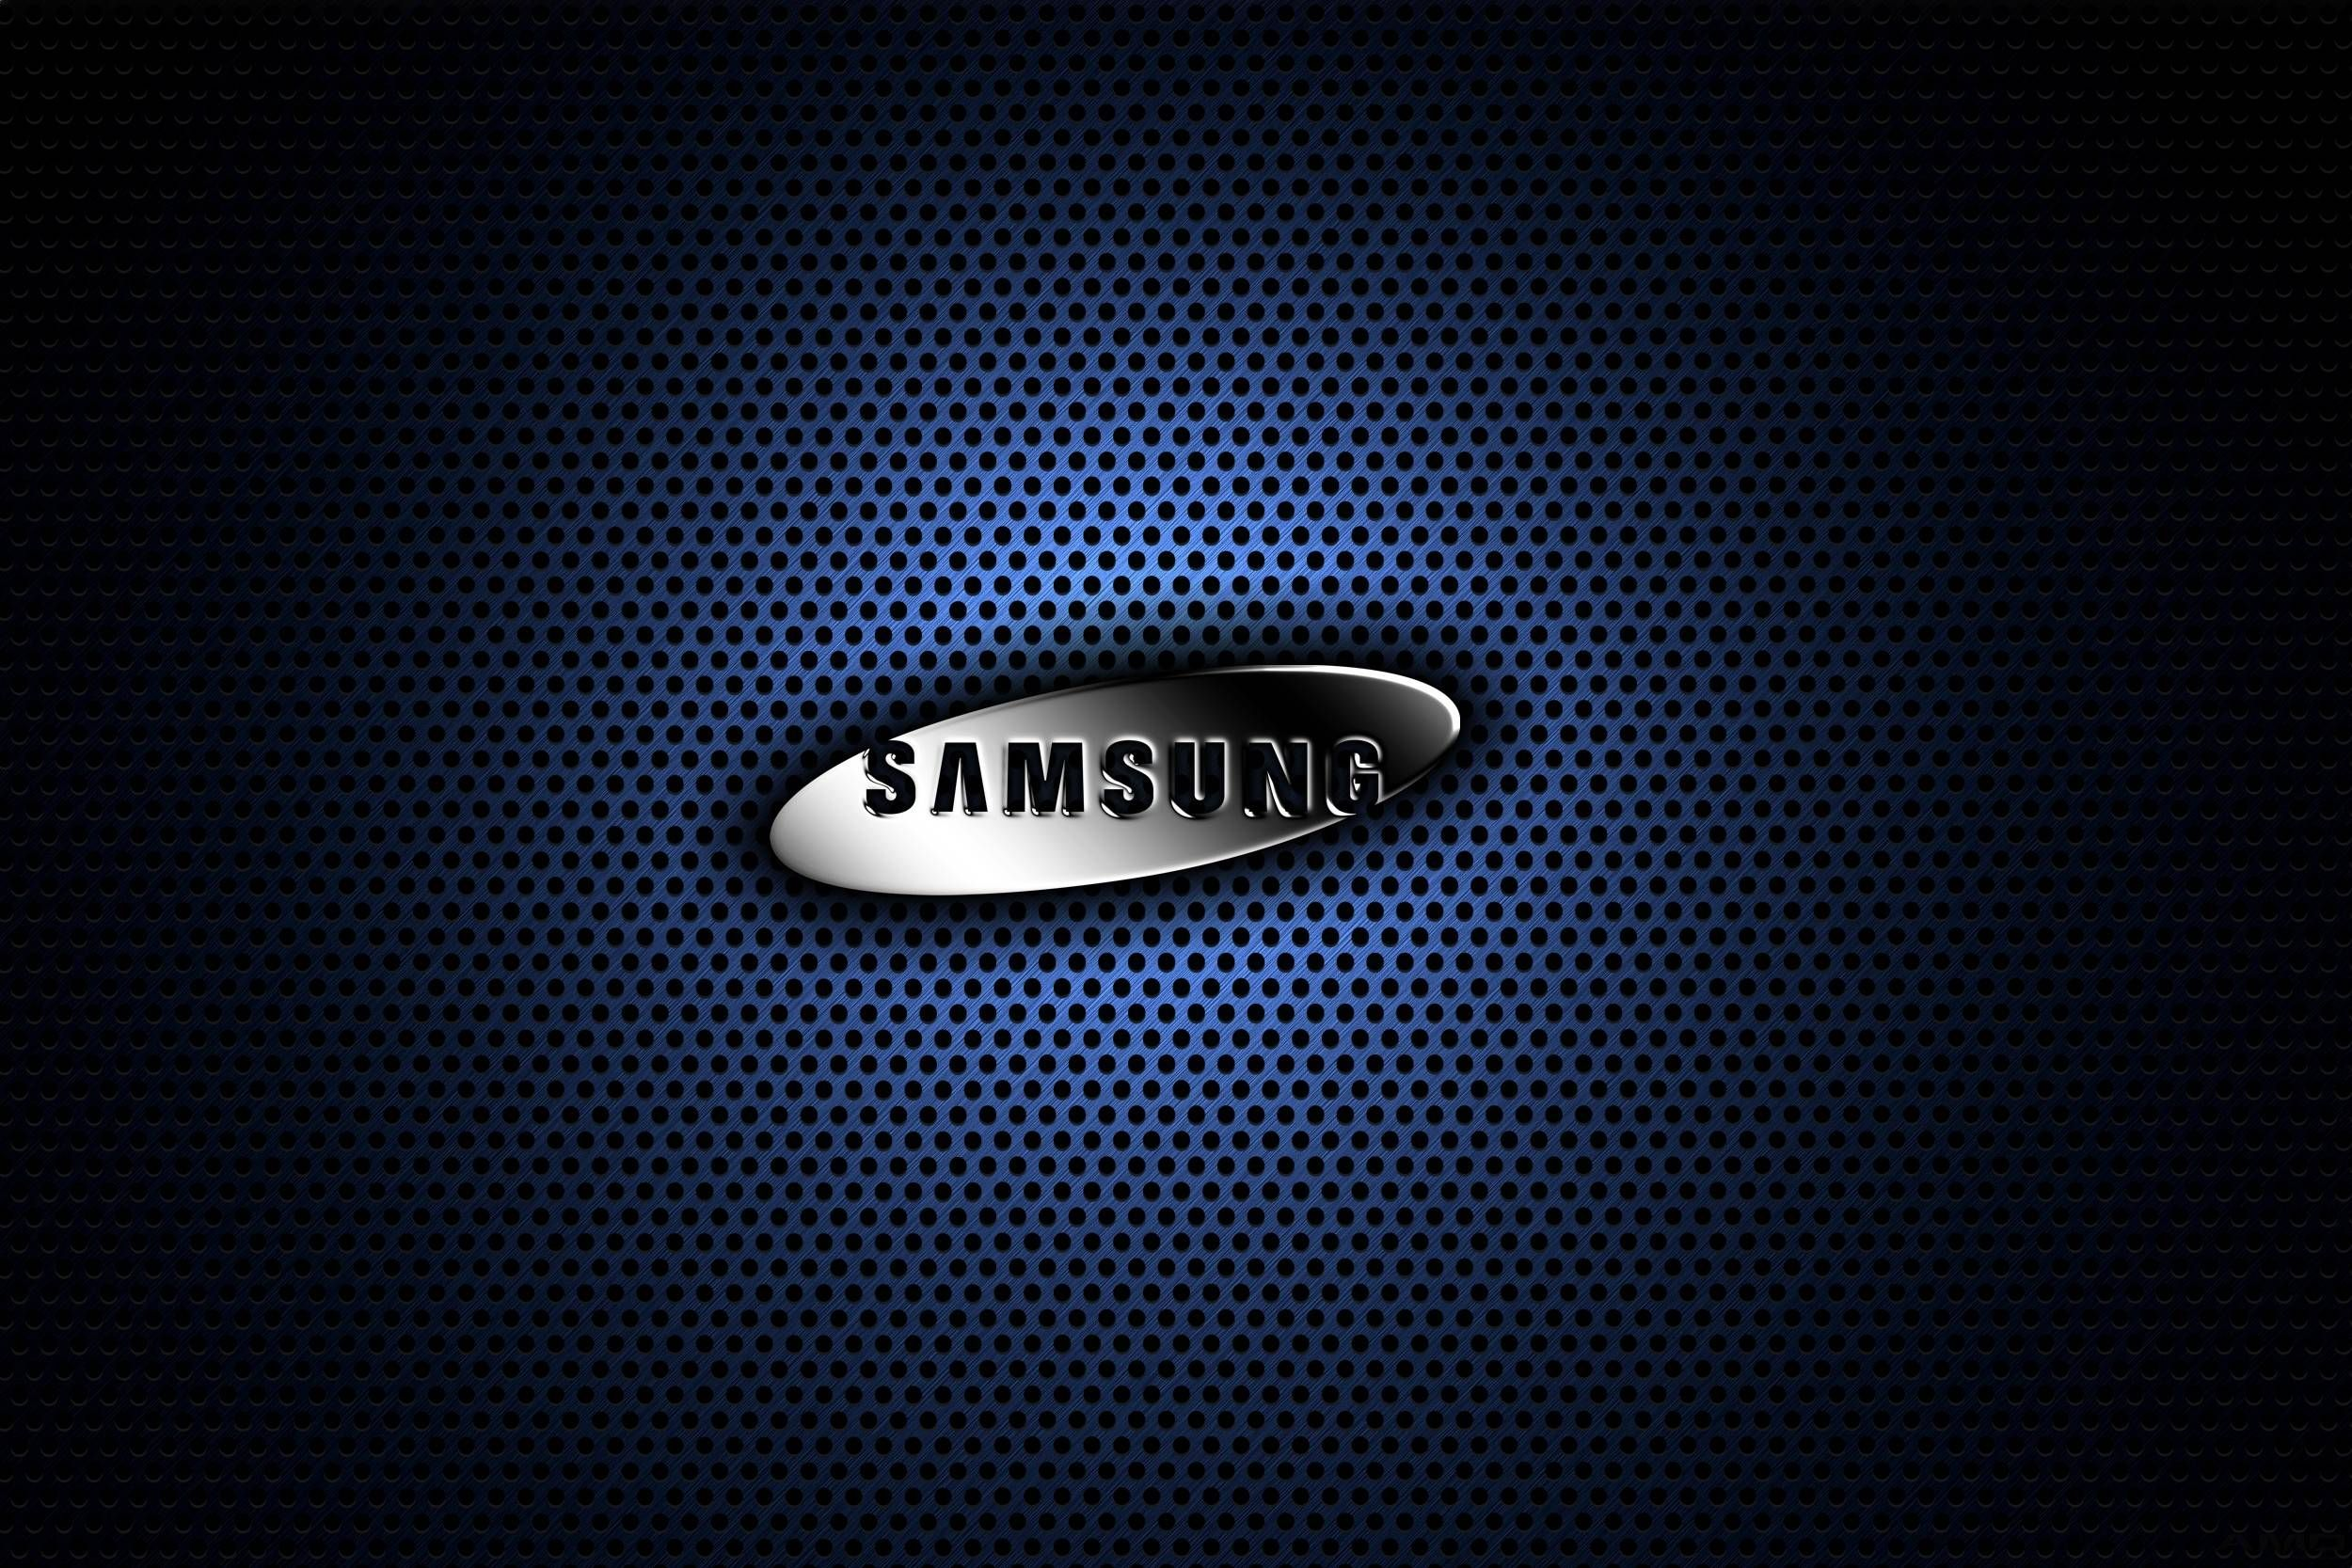 Samsung Logo Wallpapers Wallpaper With Images Cool Wallpapers